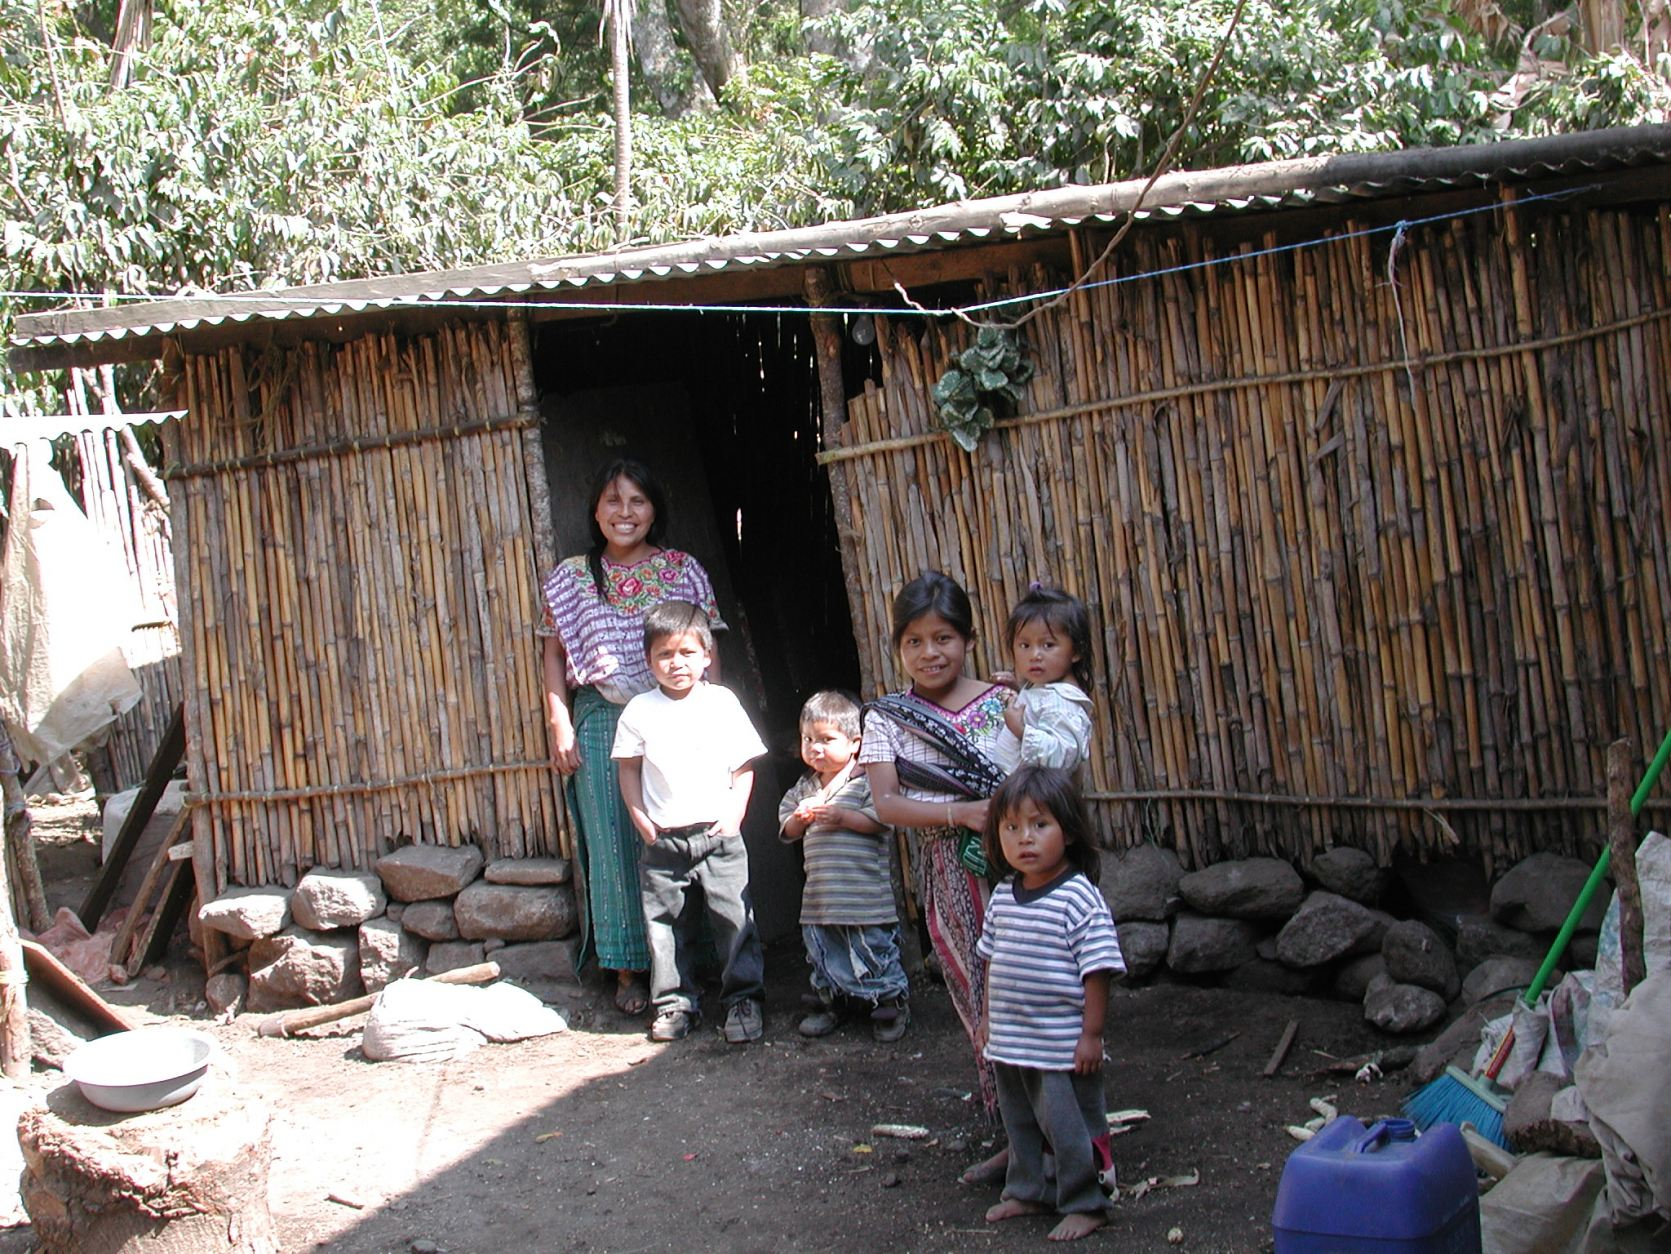 A typical rural Guatemalan home